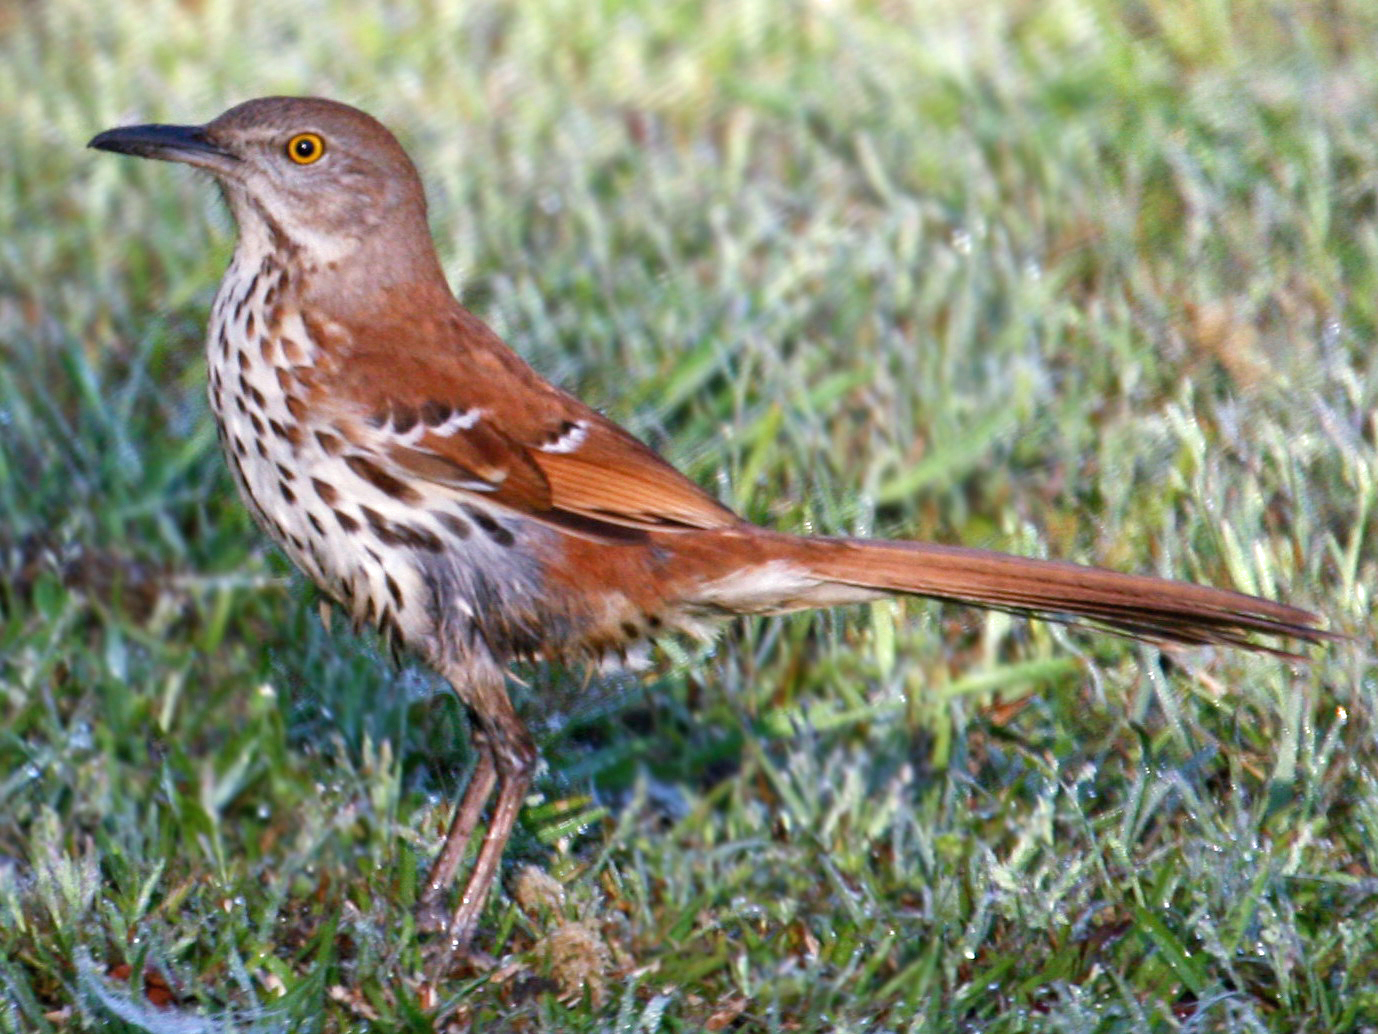 The Brown Thrasher Is The State Bird Of Georgia.